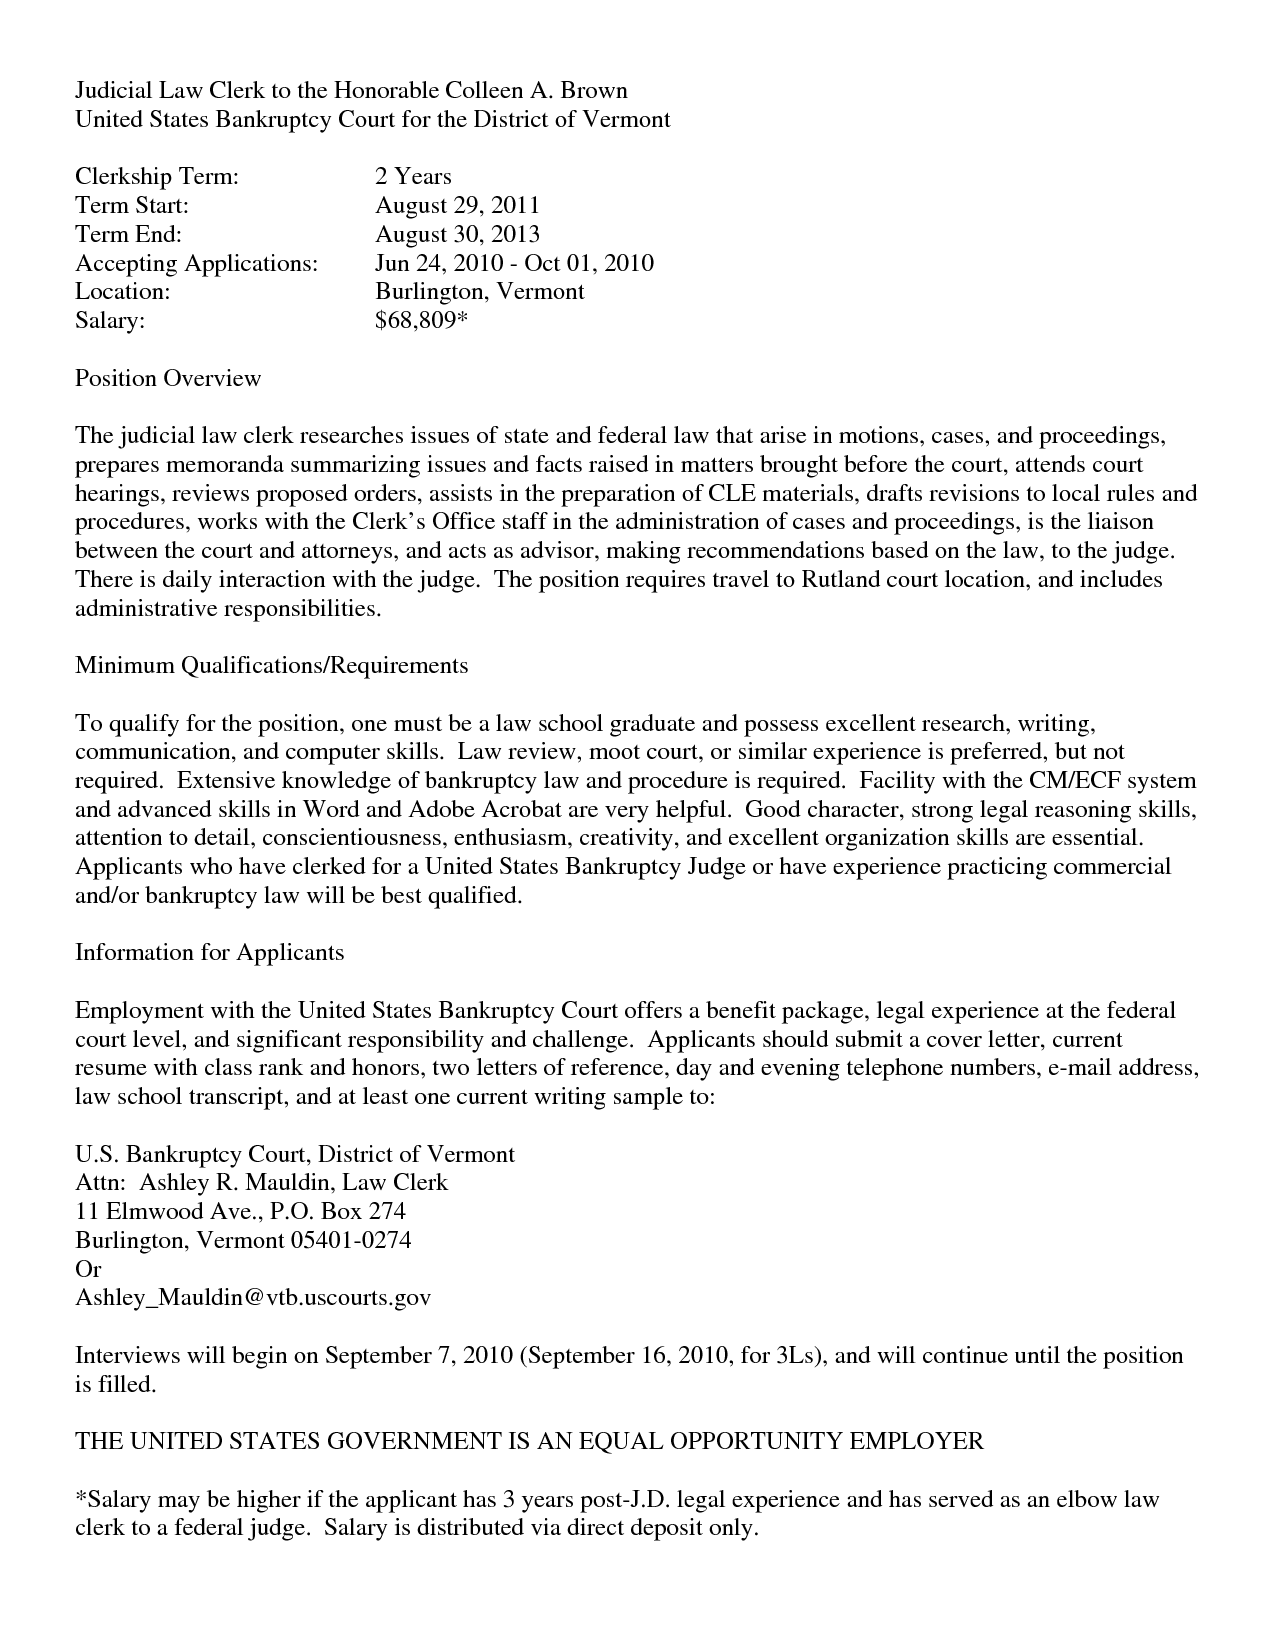 Recommendation Letter Sample For Job ApplicationReference Letter – Job Recommendation Letter